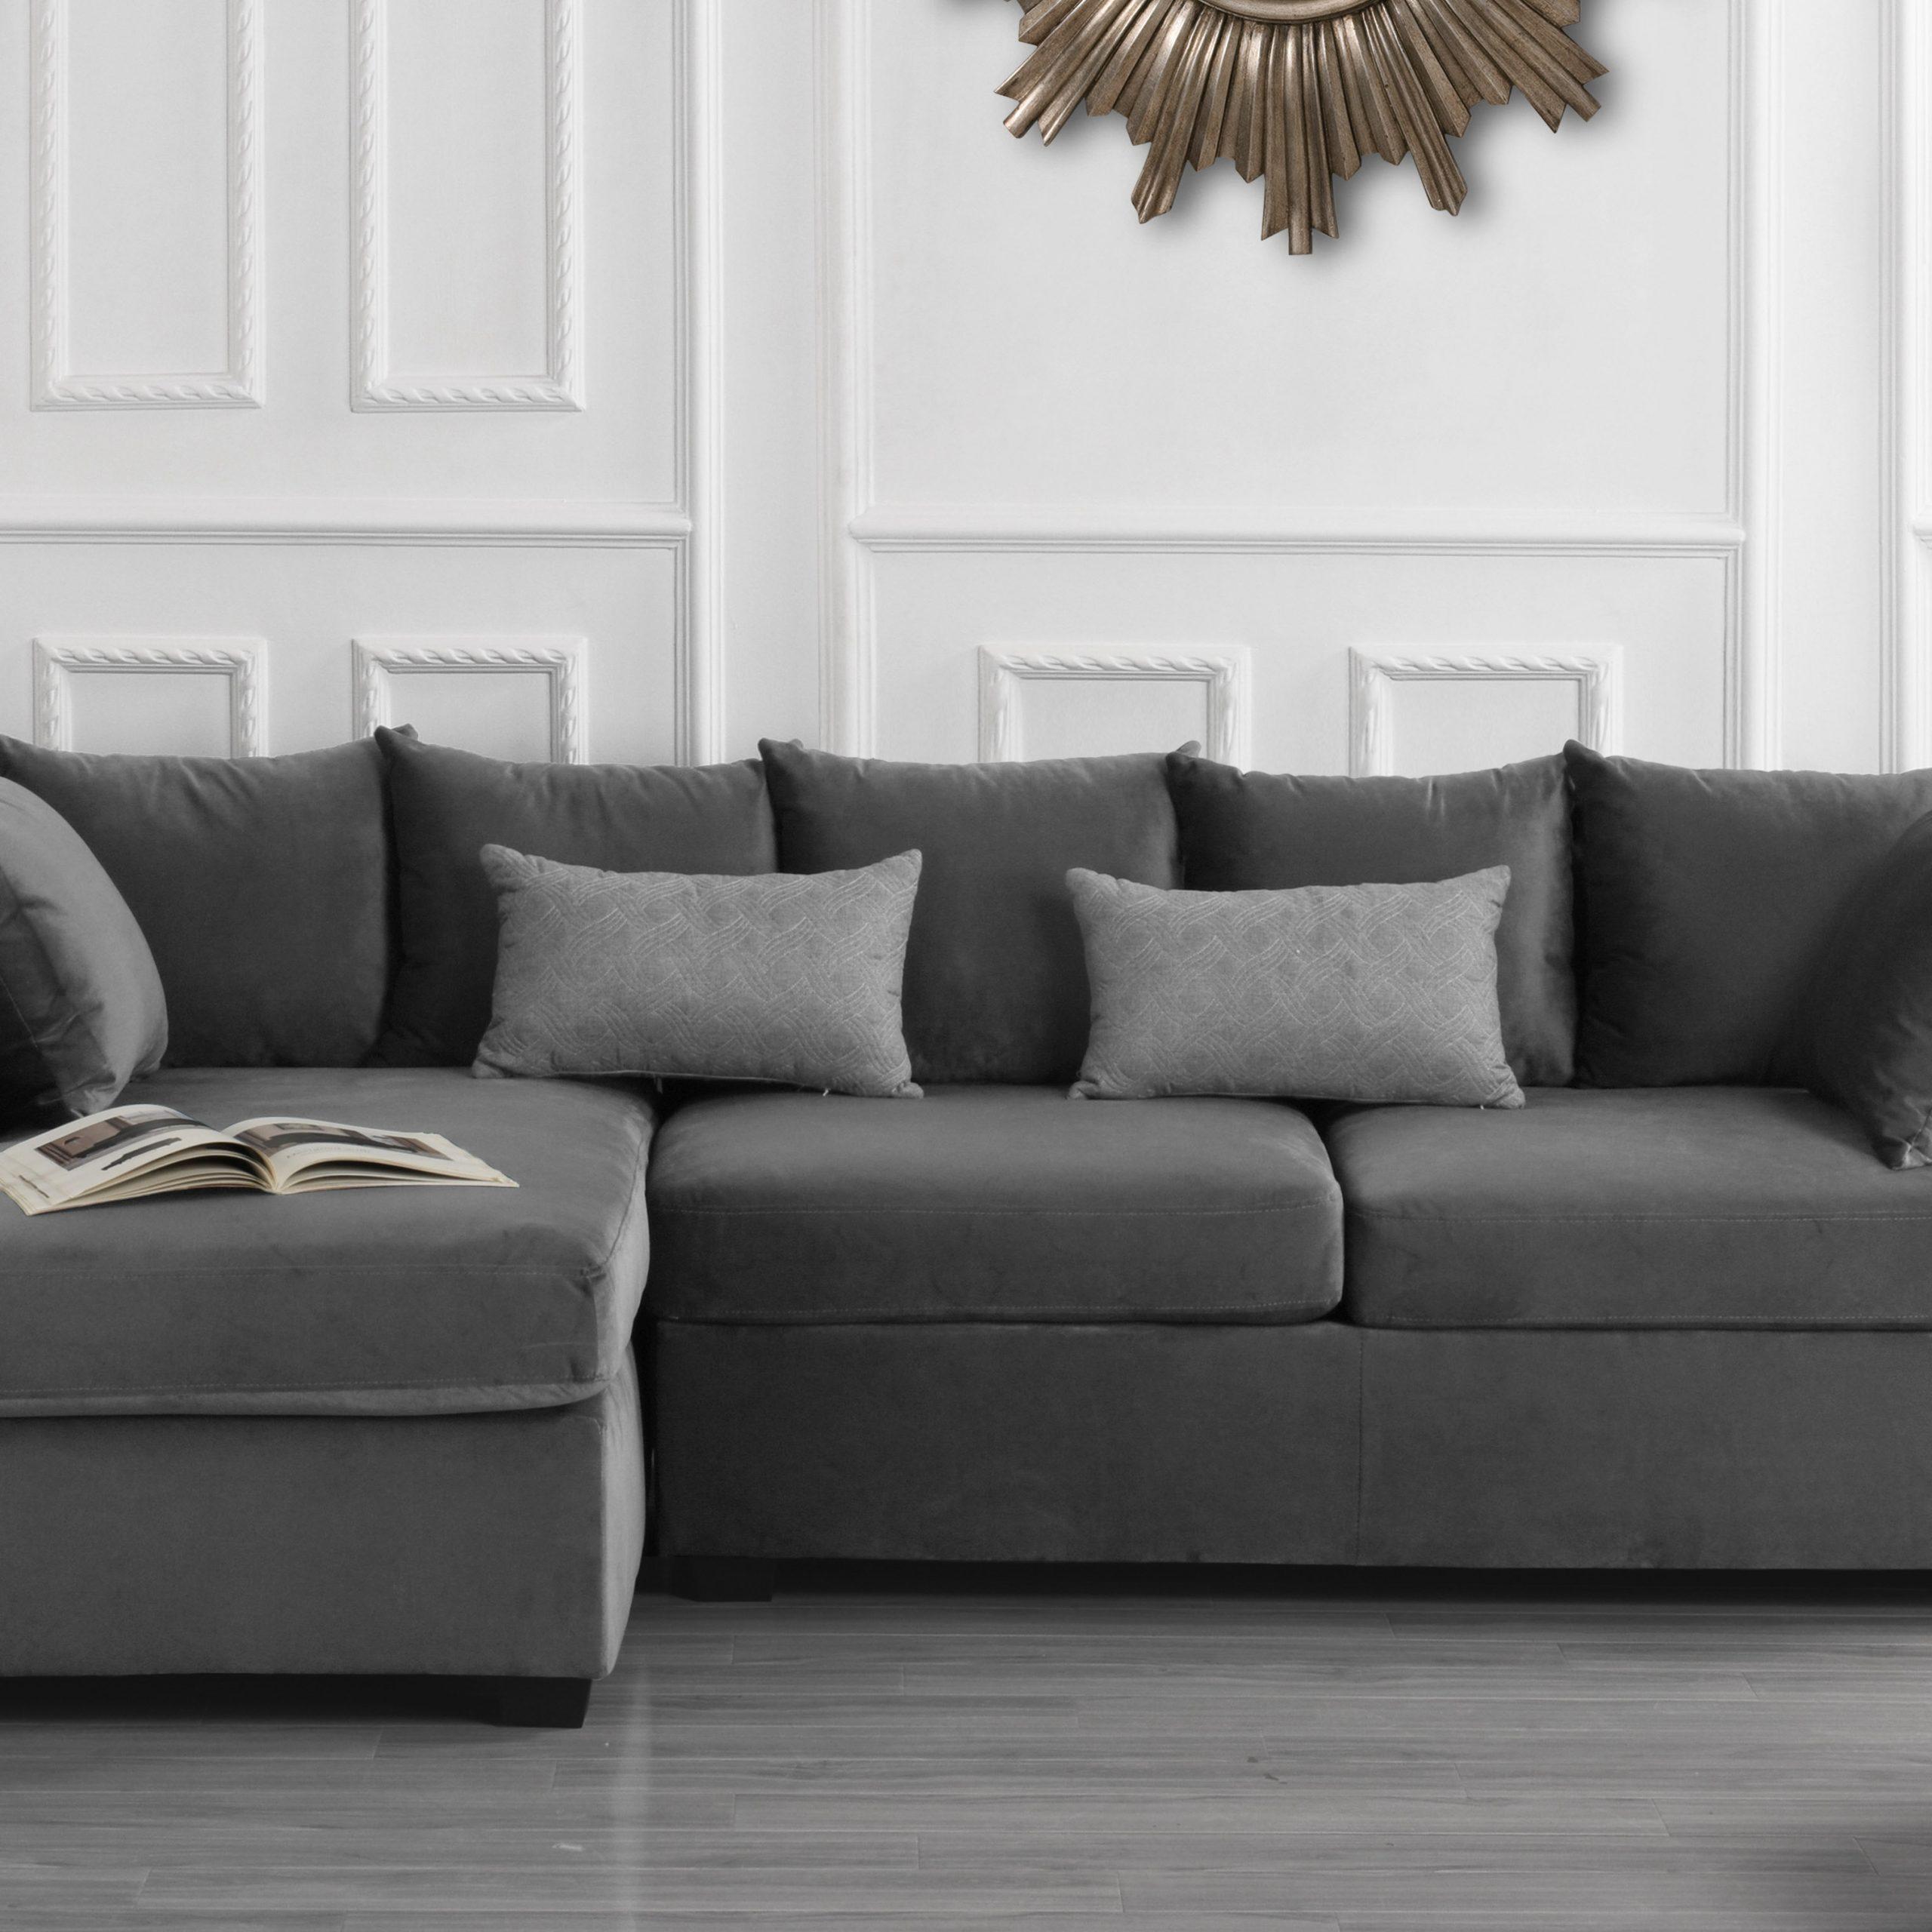 Modern Home Large Microfiber Velvet Sectional Sofa, Dark Within Sectional Sofas With Oversized Ottoman (View 2 of 15)